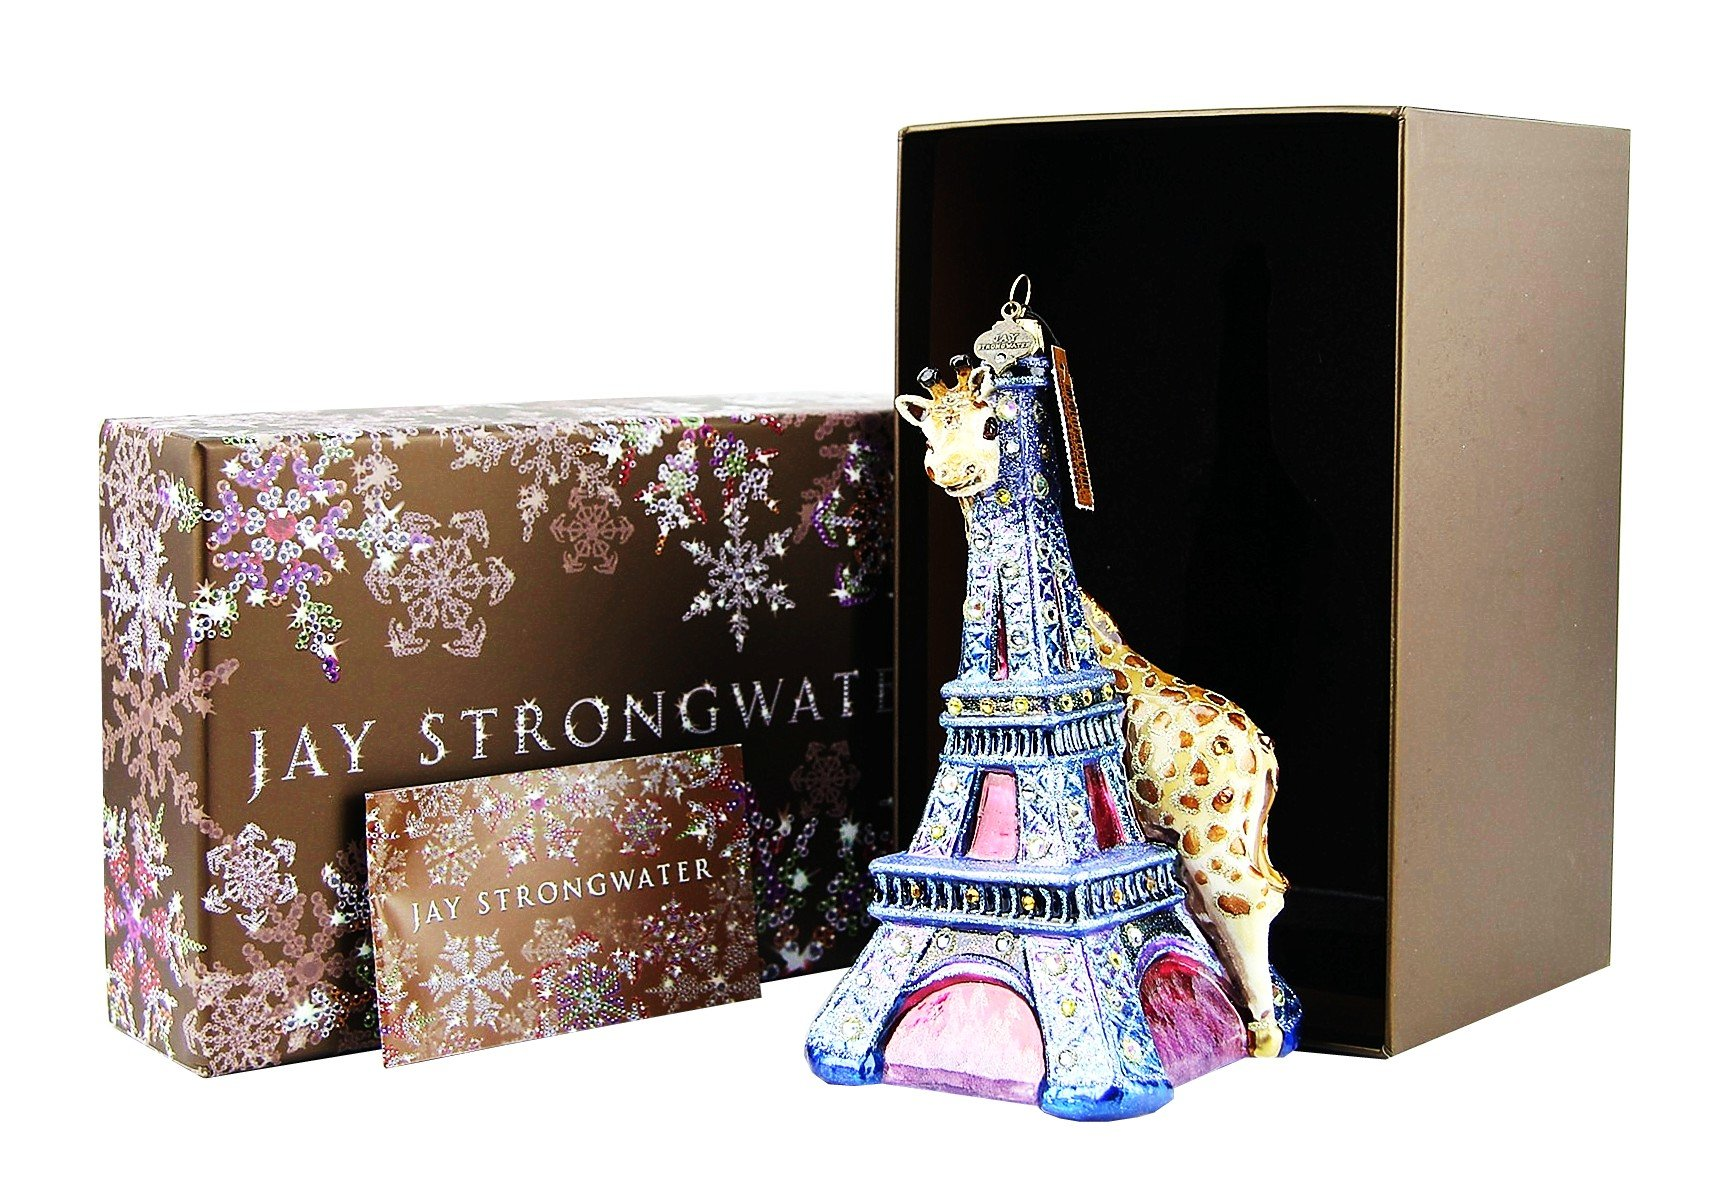 Jay Strongwater Eiffel Tower & Giraffe Christmas Ornament Brand New in Gift Box & Tags